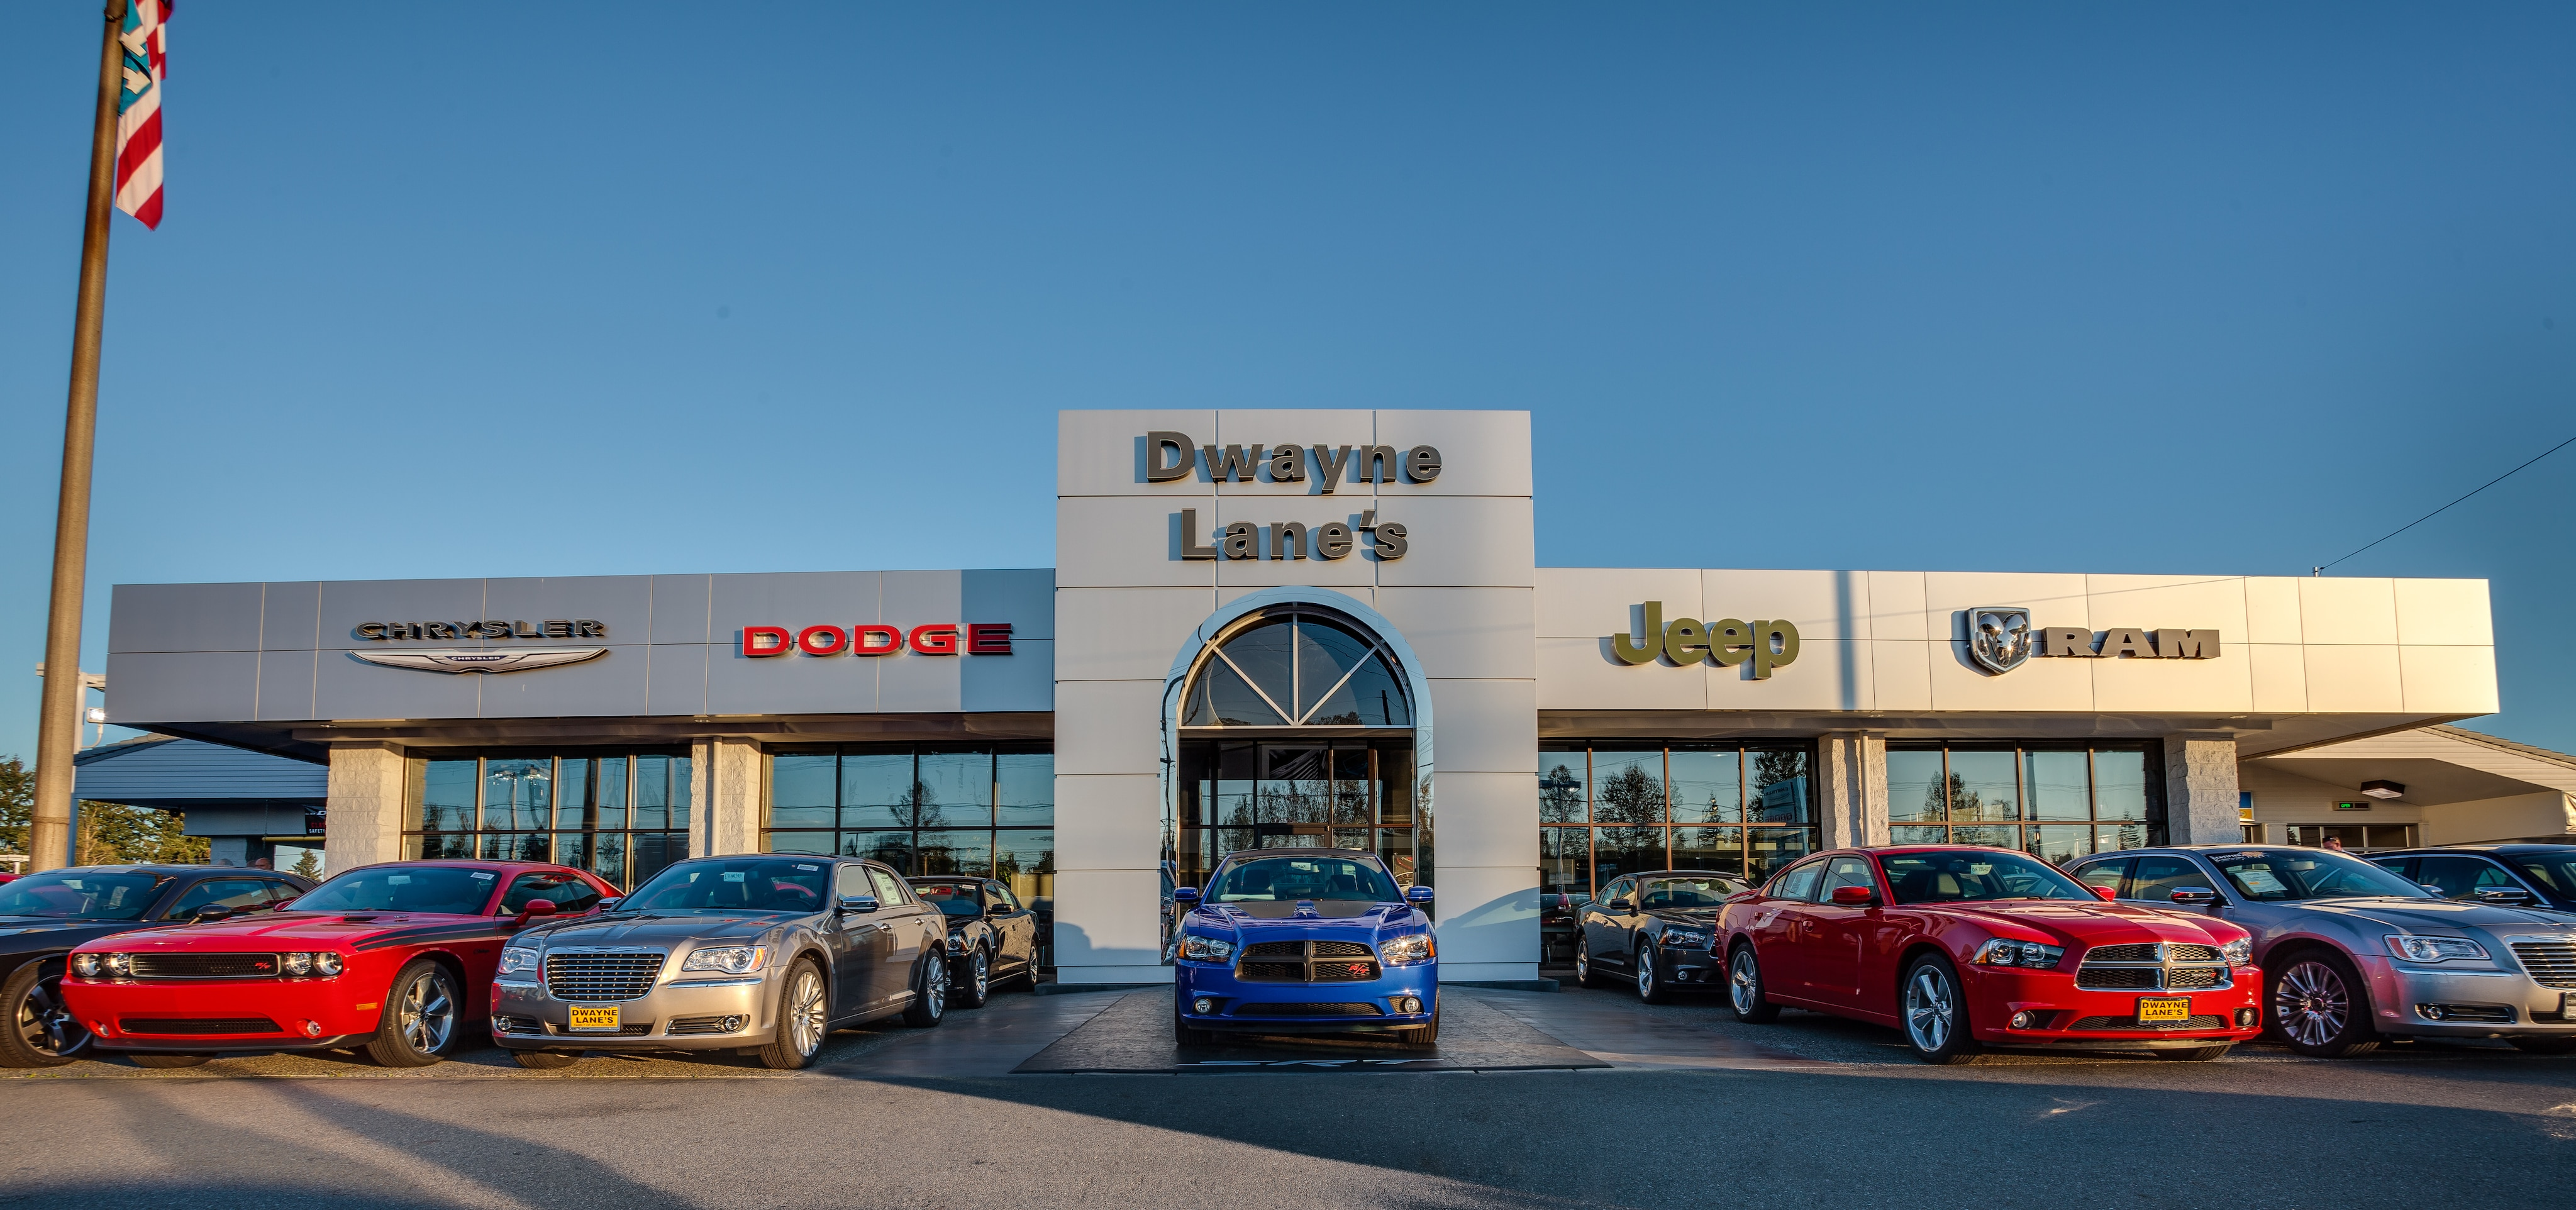 Dwayne Lane's has a Full Service Chrysler Jeep Dodge Ram Dealership in Everett, WA